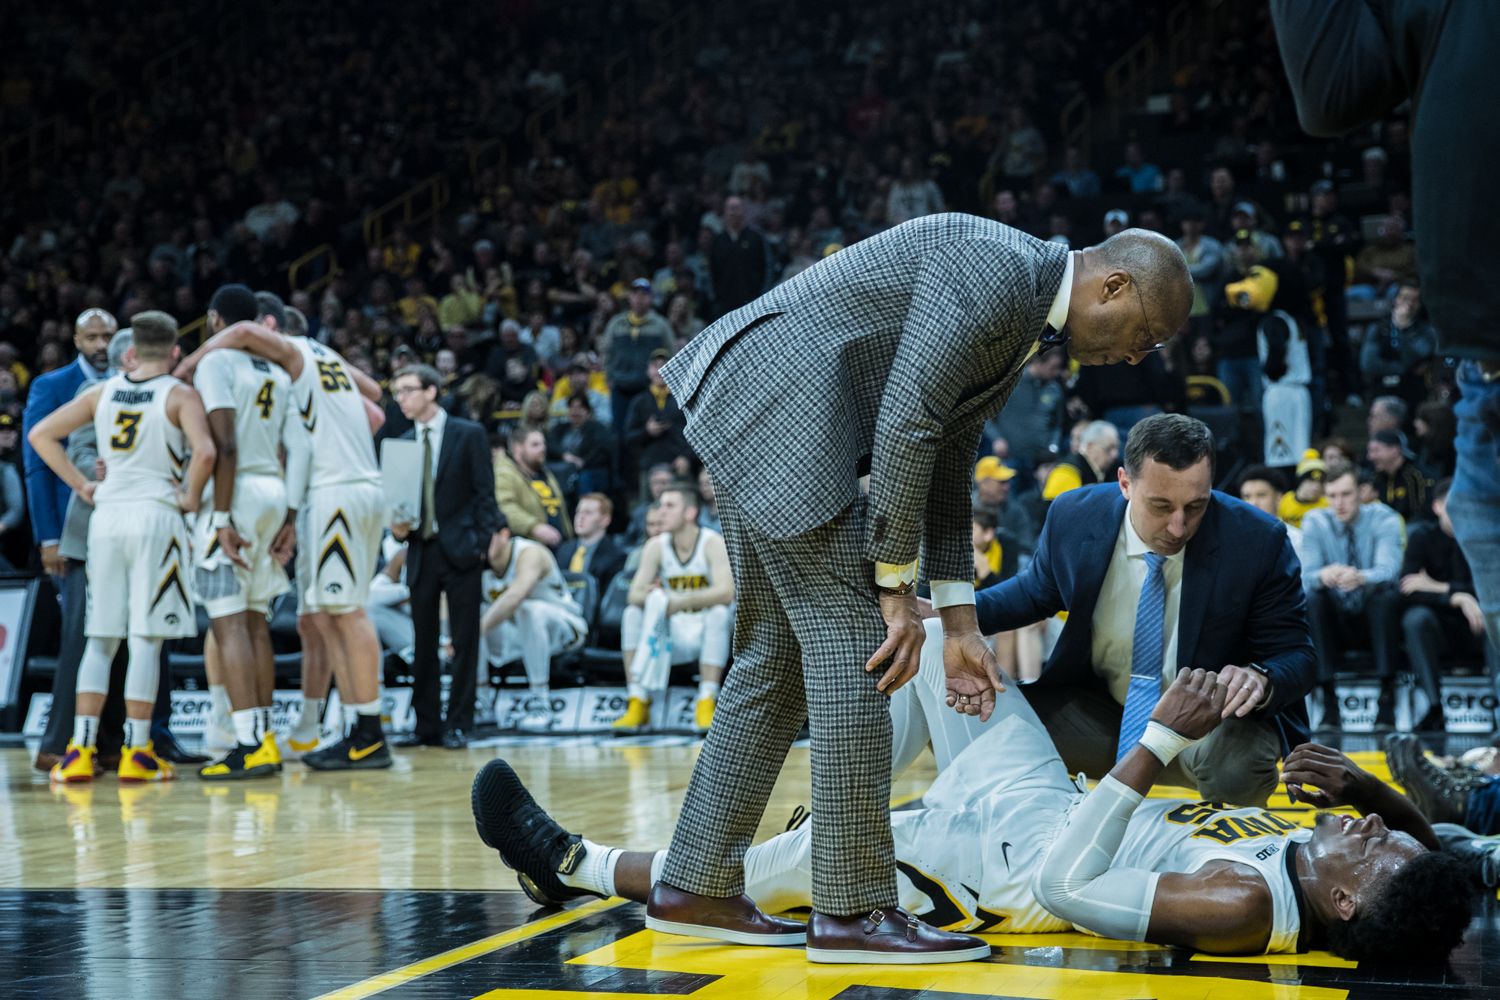 Trainers+tend+to+Iowa+forward+Tyler+Cook+during+a+men%27s+basketball+matchup+between+Ohio+State+and+Iowa+at+Carver-Hawkeye+Arena+on+Saturday%2C+January+12%2C+2019.+The+Hawkeyes+defeated+the+Buckeyes%2C+72-62.